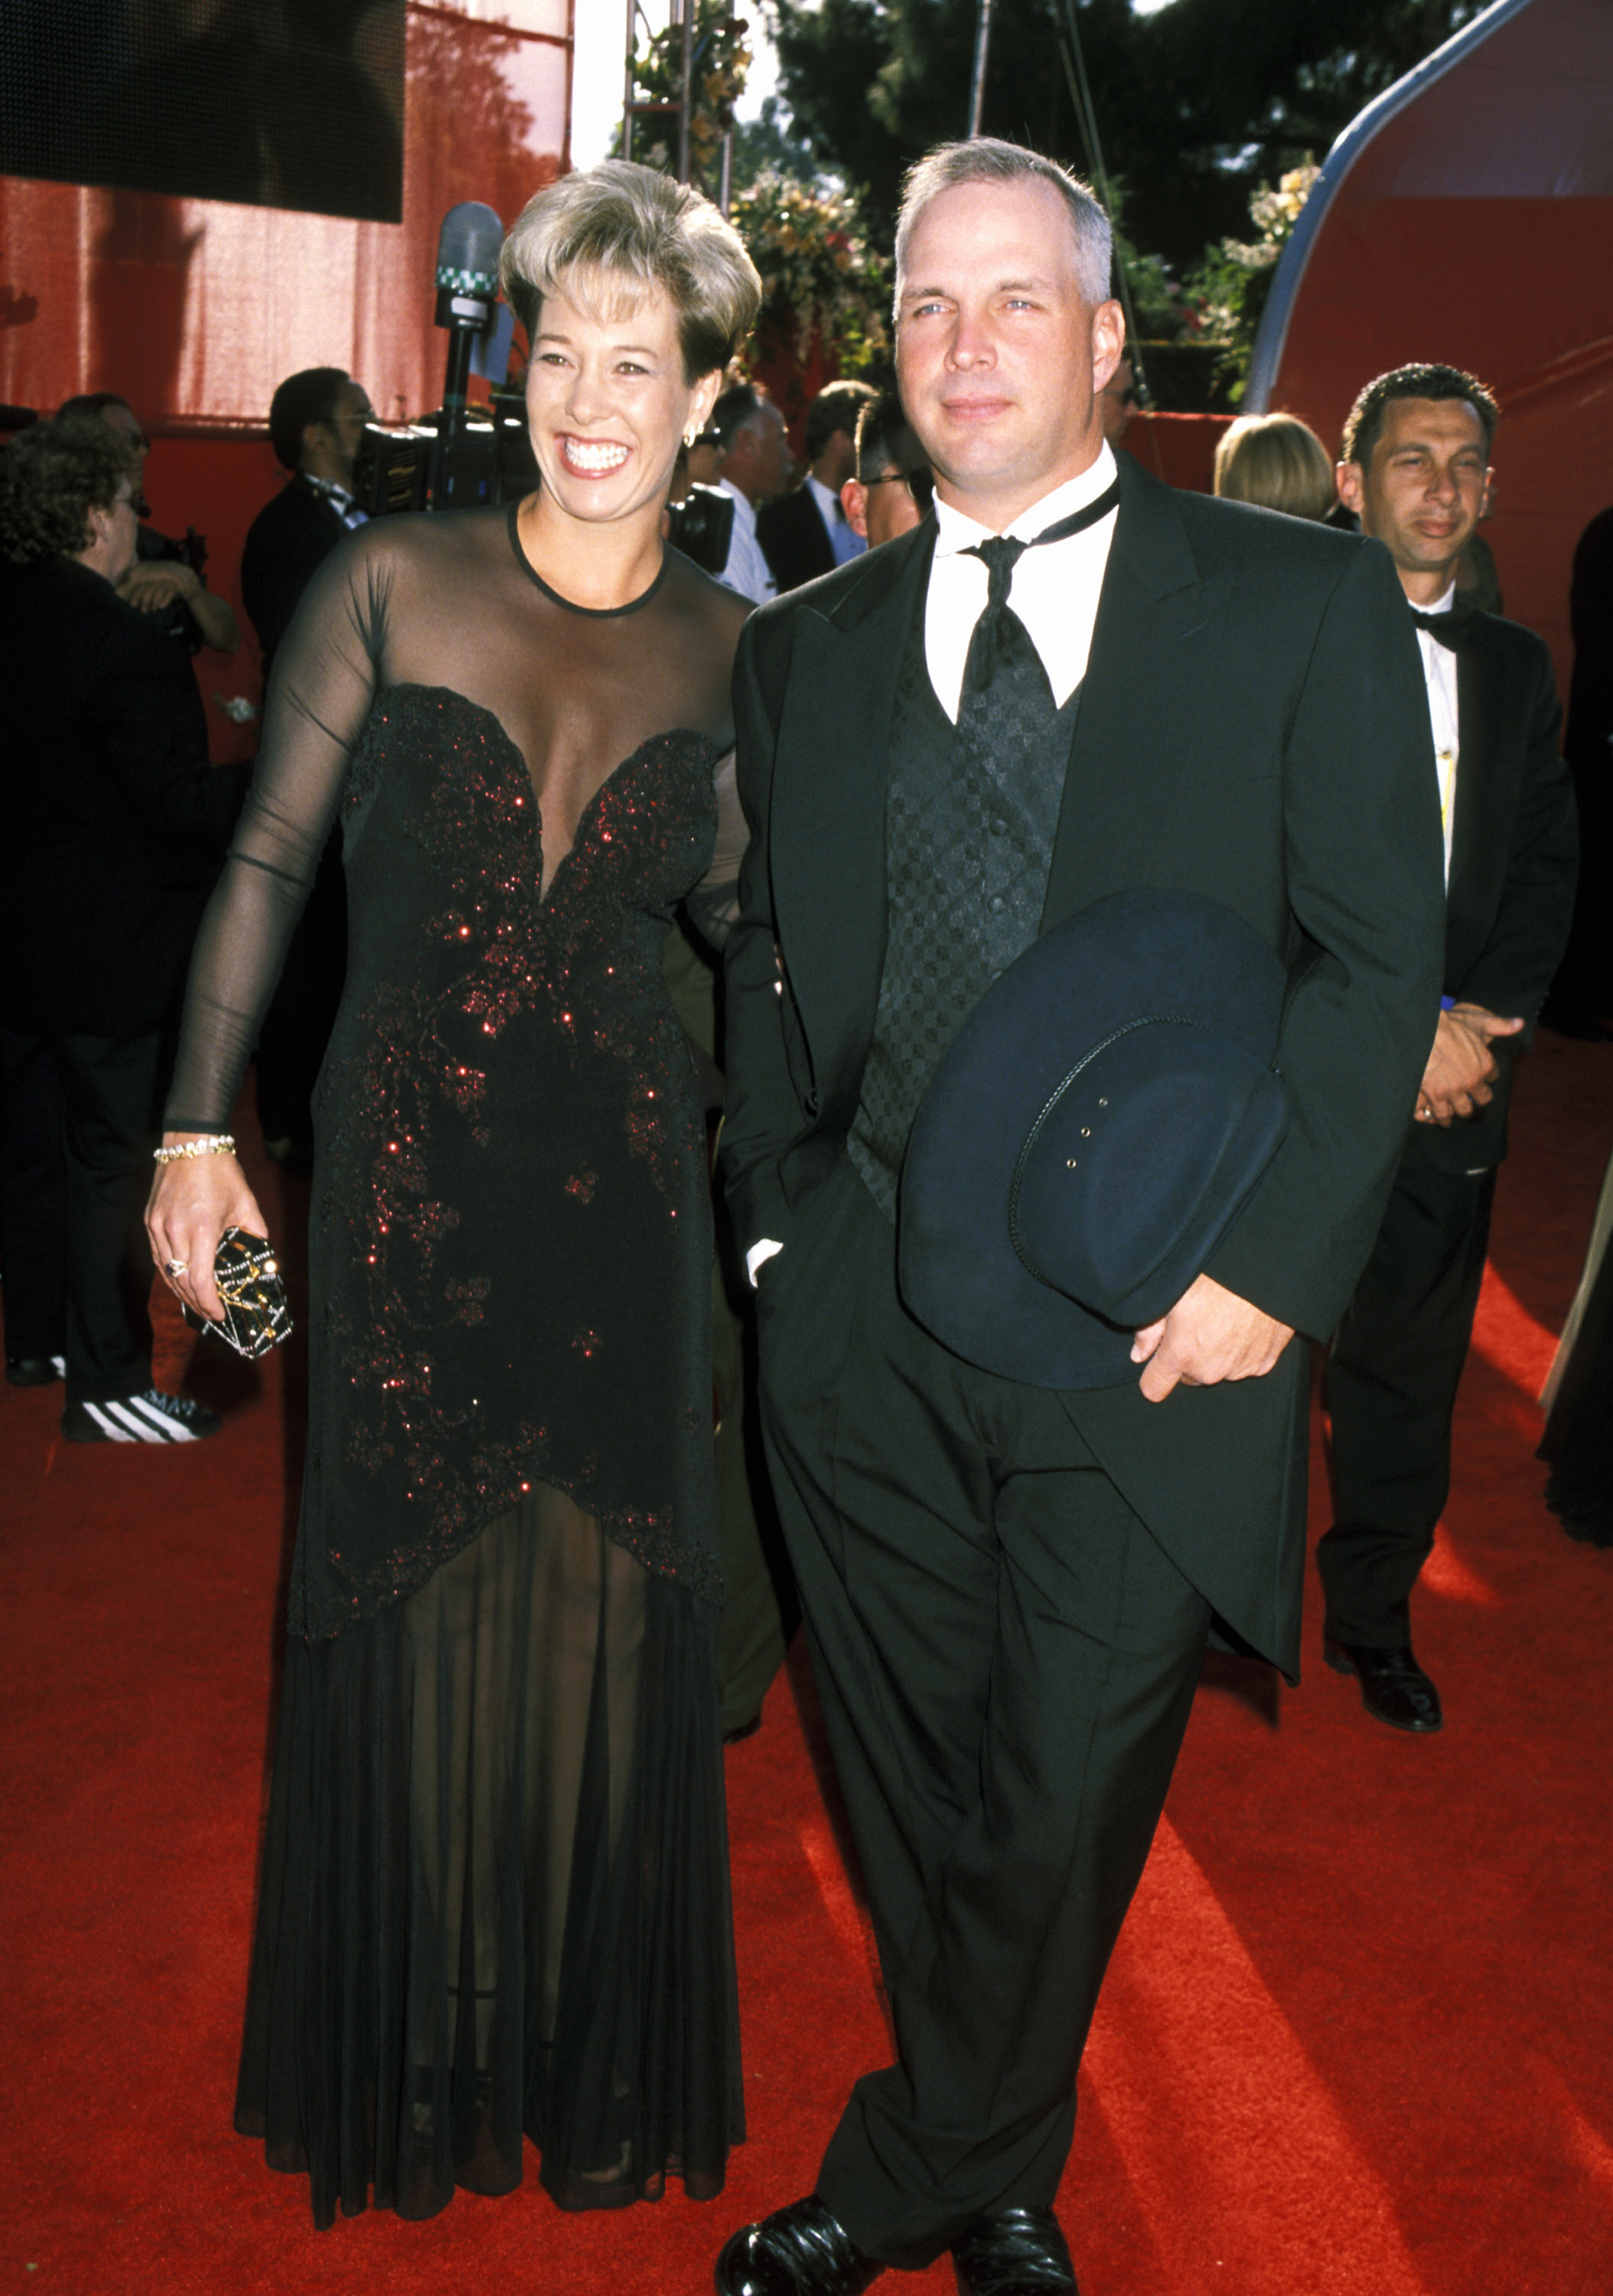 garth brooks ex wife sandy mahl award show